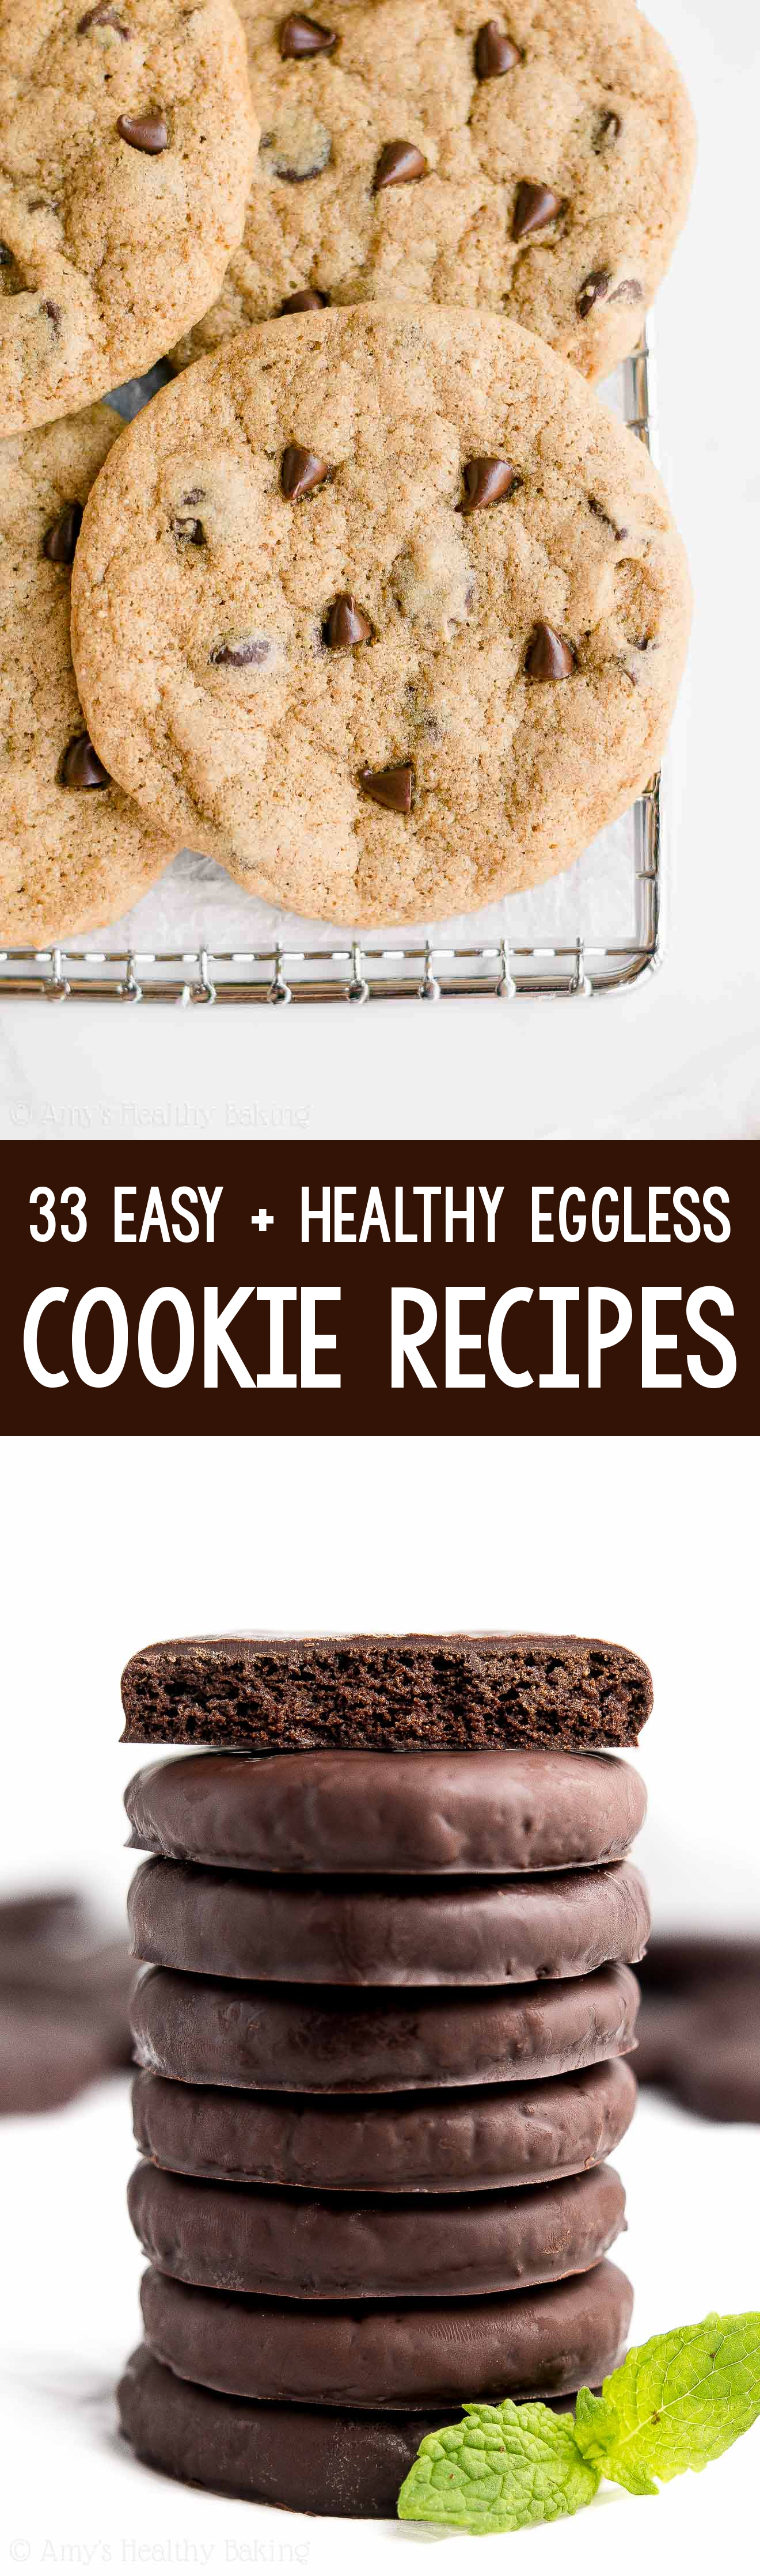 The BEST EVER healthy eggless vegan cookie recipes! Including 1-bowl chocolate chip cookies & healthy homemade Thin Mints!